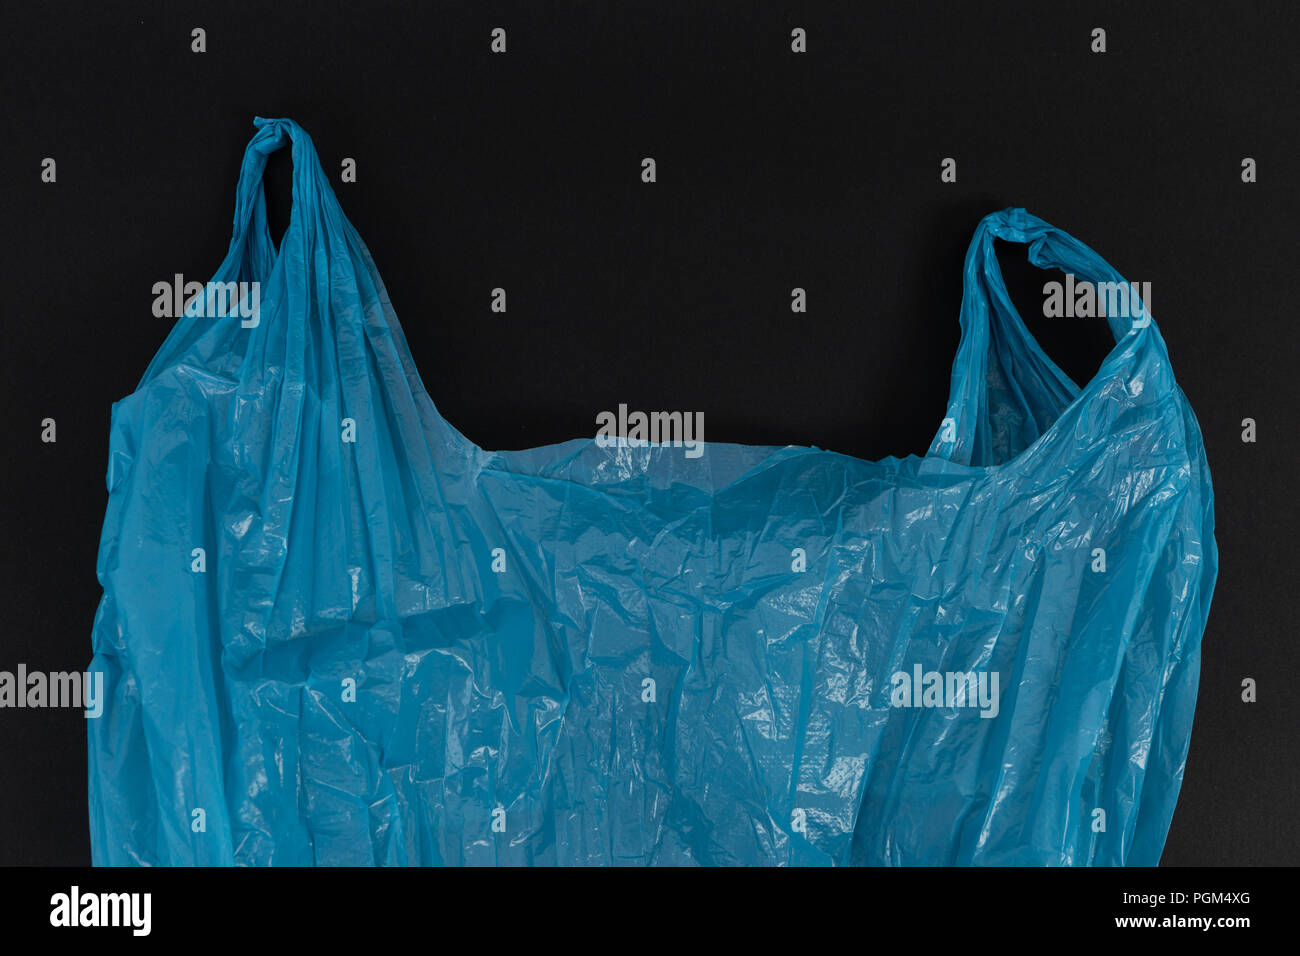 Used crumpled single use blue plastic bag with handles as waste pollution environment ecology concept isolated on black background Stock Photo